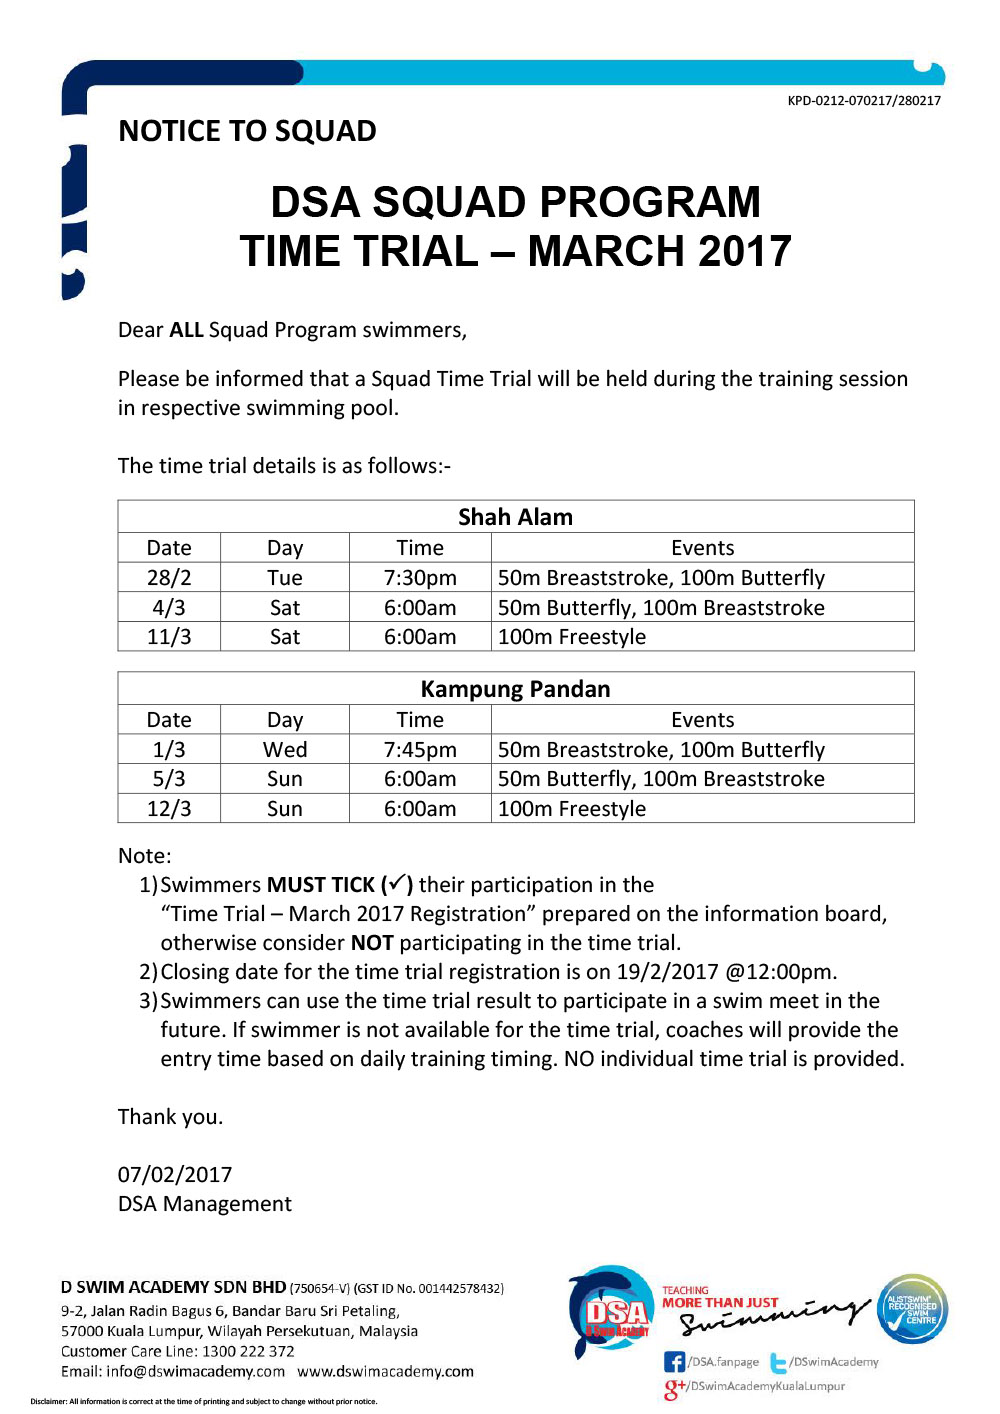 Squad Program Time Trial March 2017 - Notice